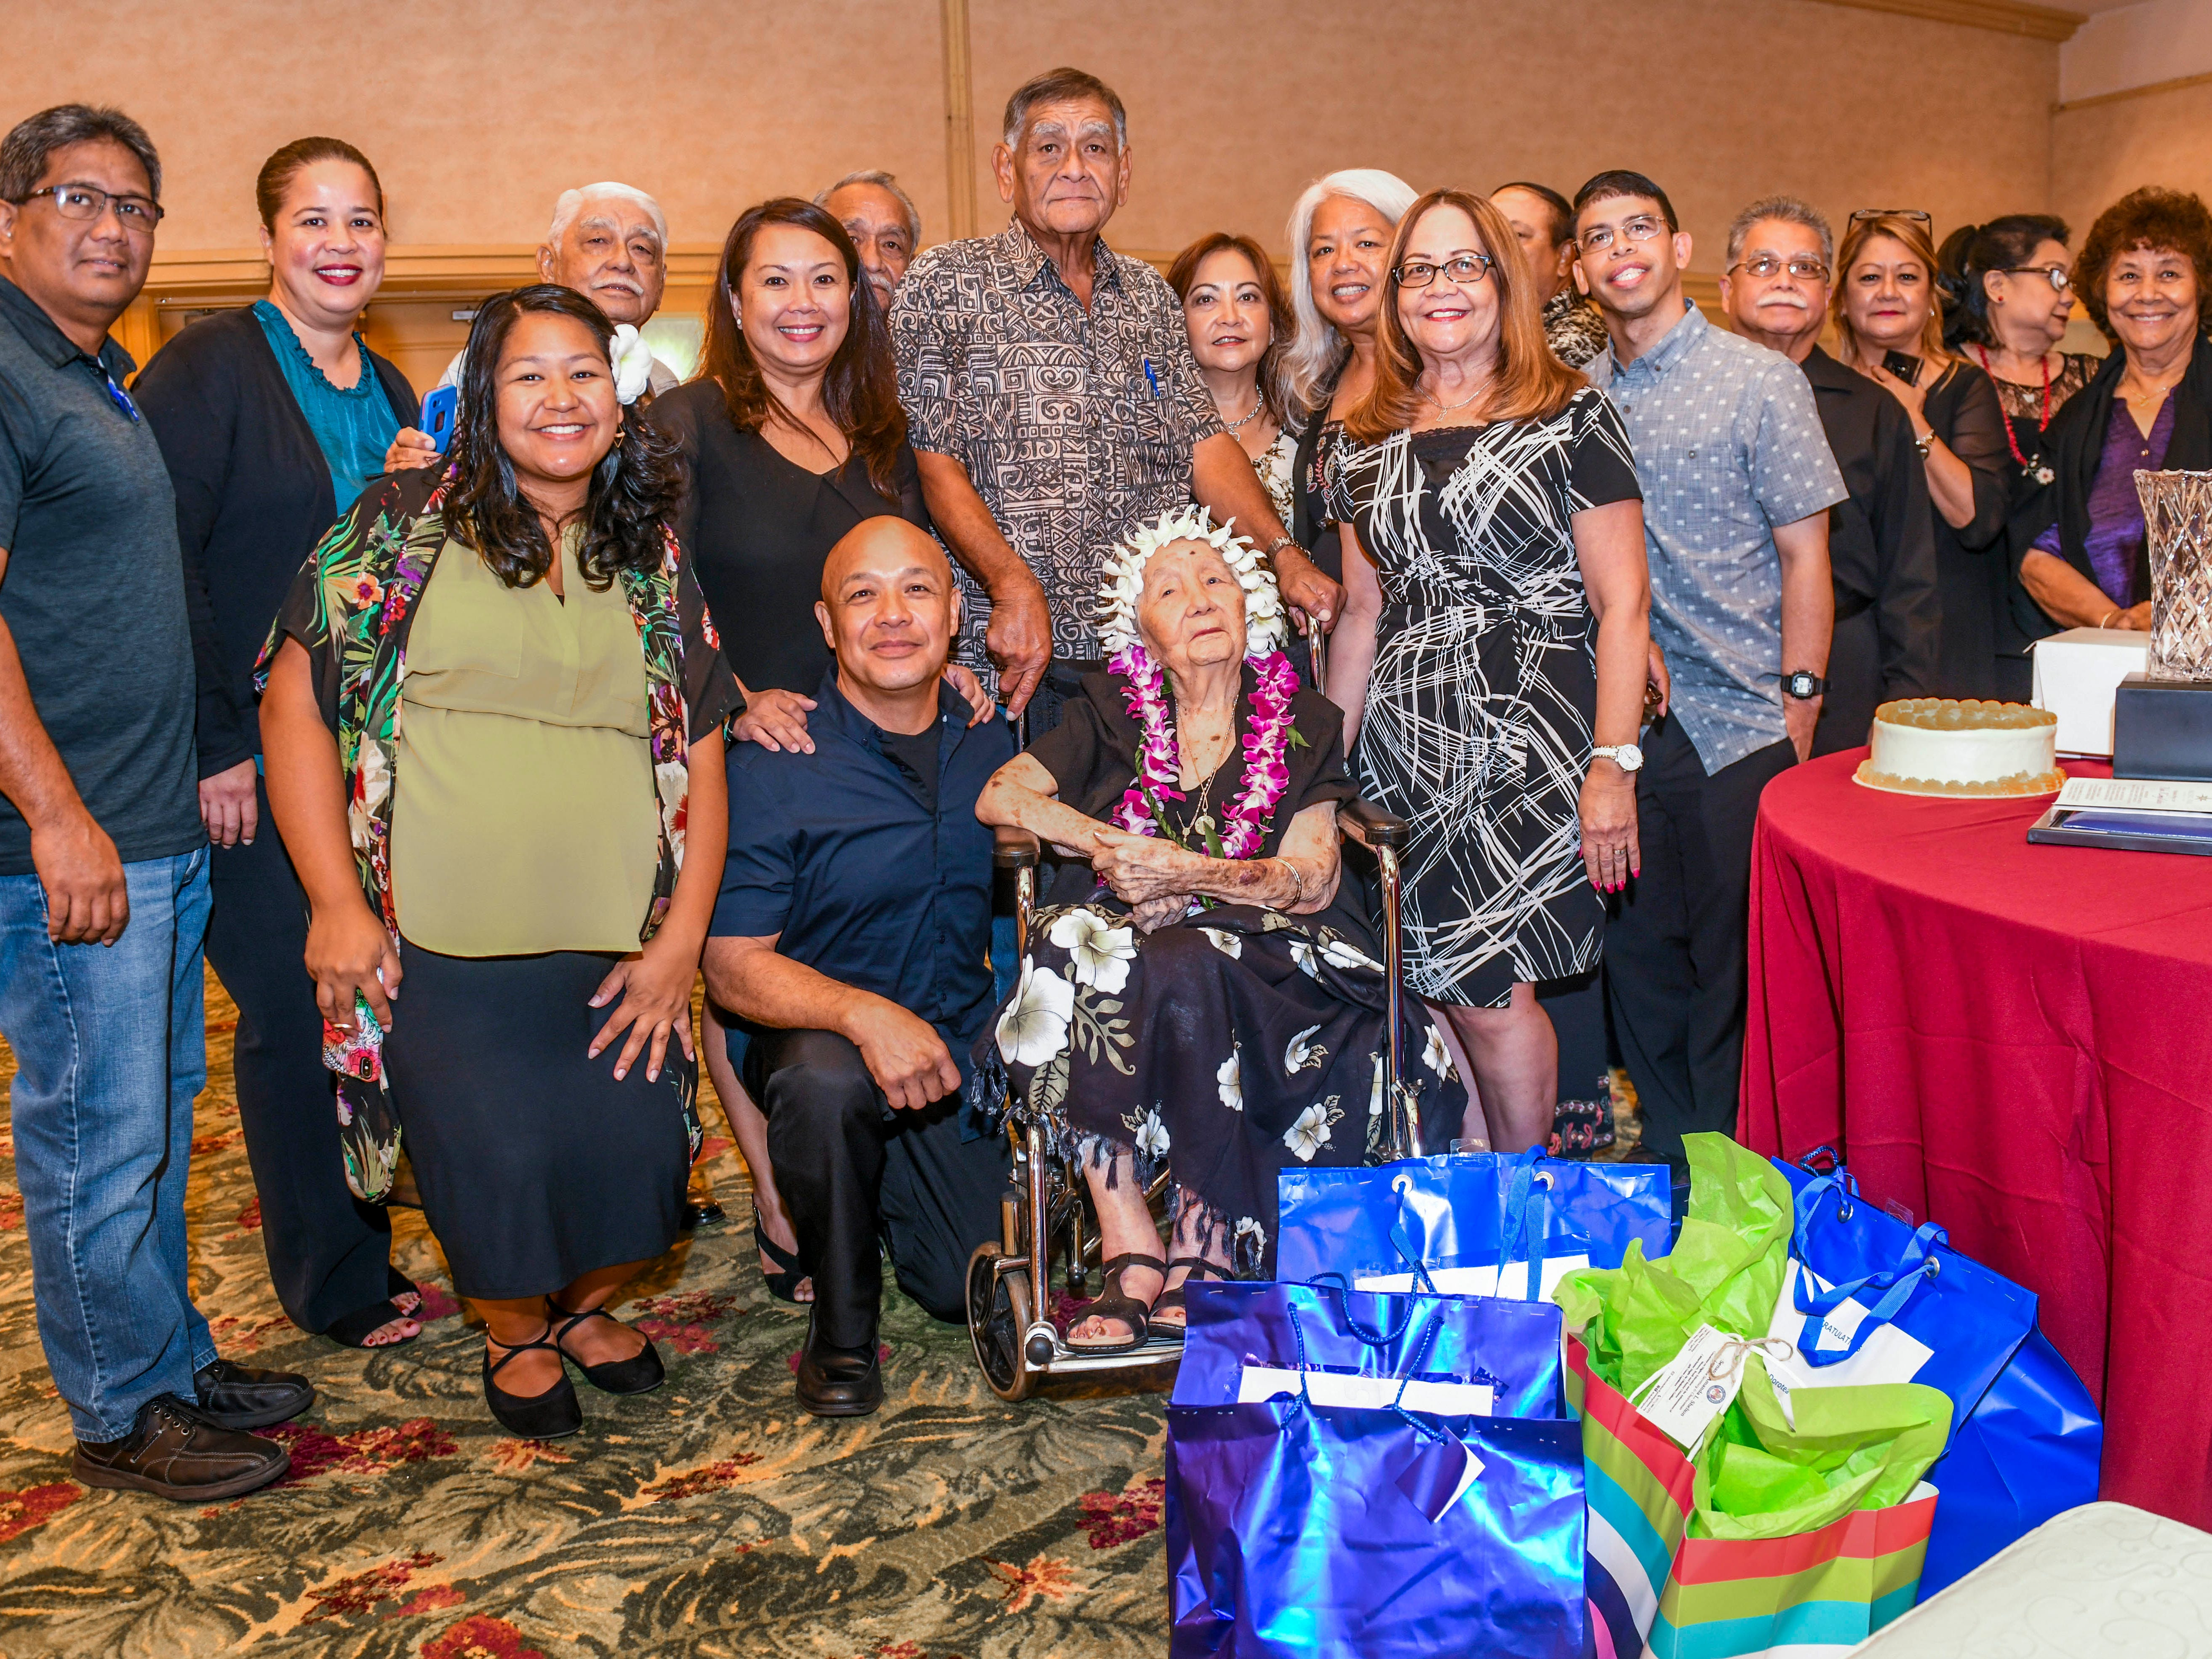 Josephina Dorotea Yamanaka Blas, seated, gathers with family and friends during the 2019 Centenarian Celebration, hosted by the Department of Public Health and Social Services, held in conjunction with Senior Citizens Month, at the Pacific Star Resort & Spa in Tumon on Thursday, May 9, 2019. Coincidentally, the event fell on Blas' birthday being born on May 9, 1915.